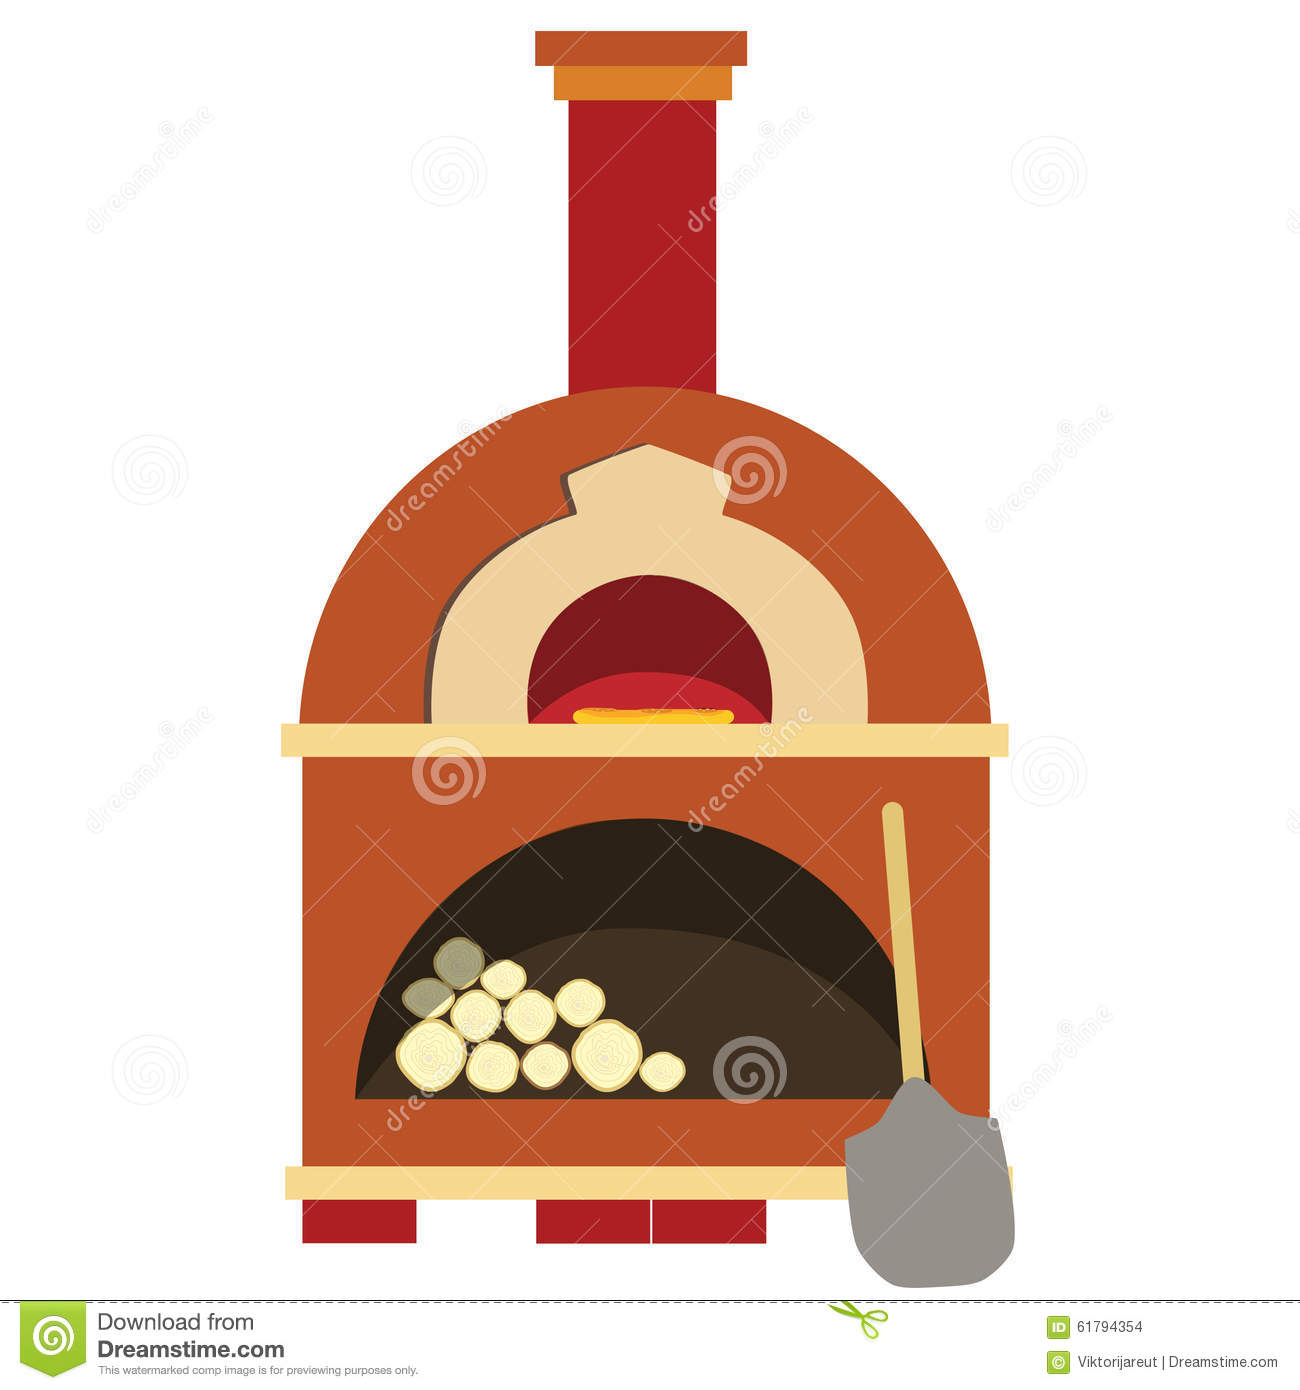 Pizza oven, brick oven, isolated on white pizzeria.